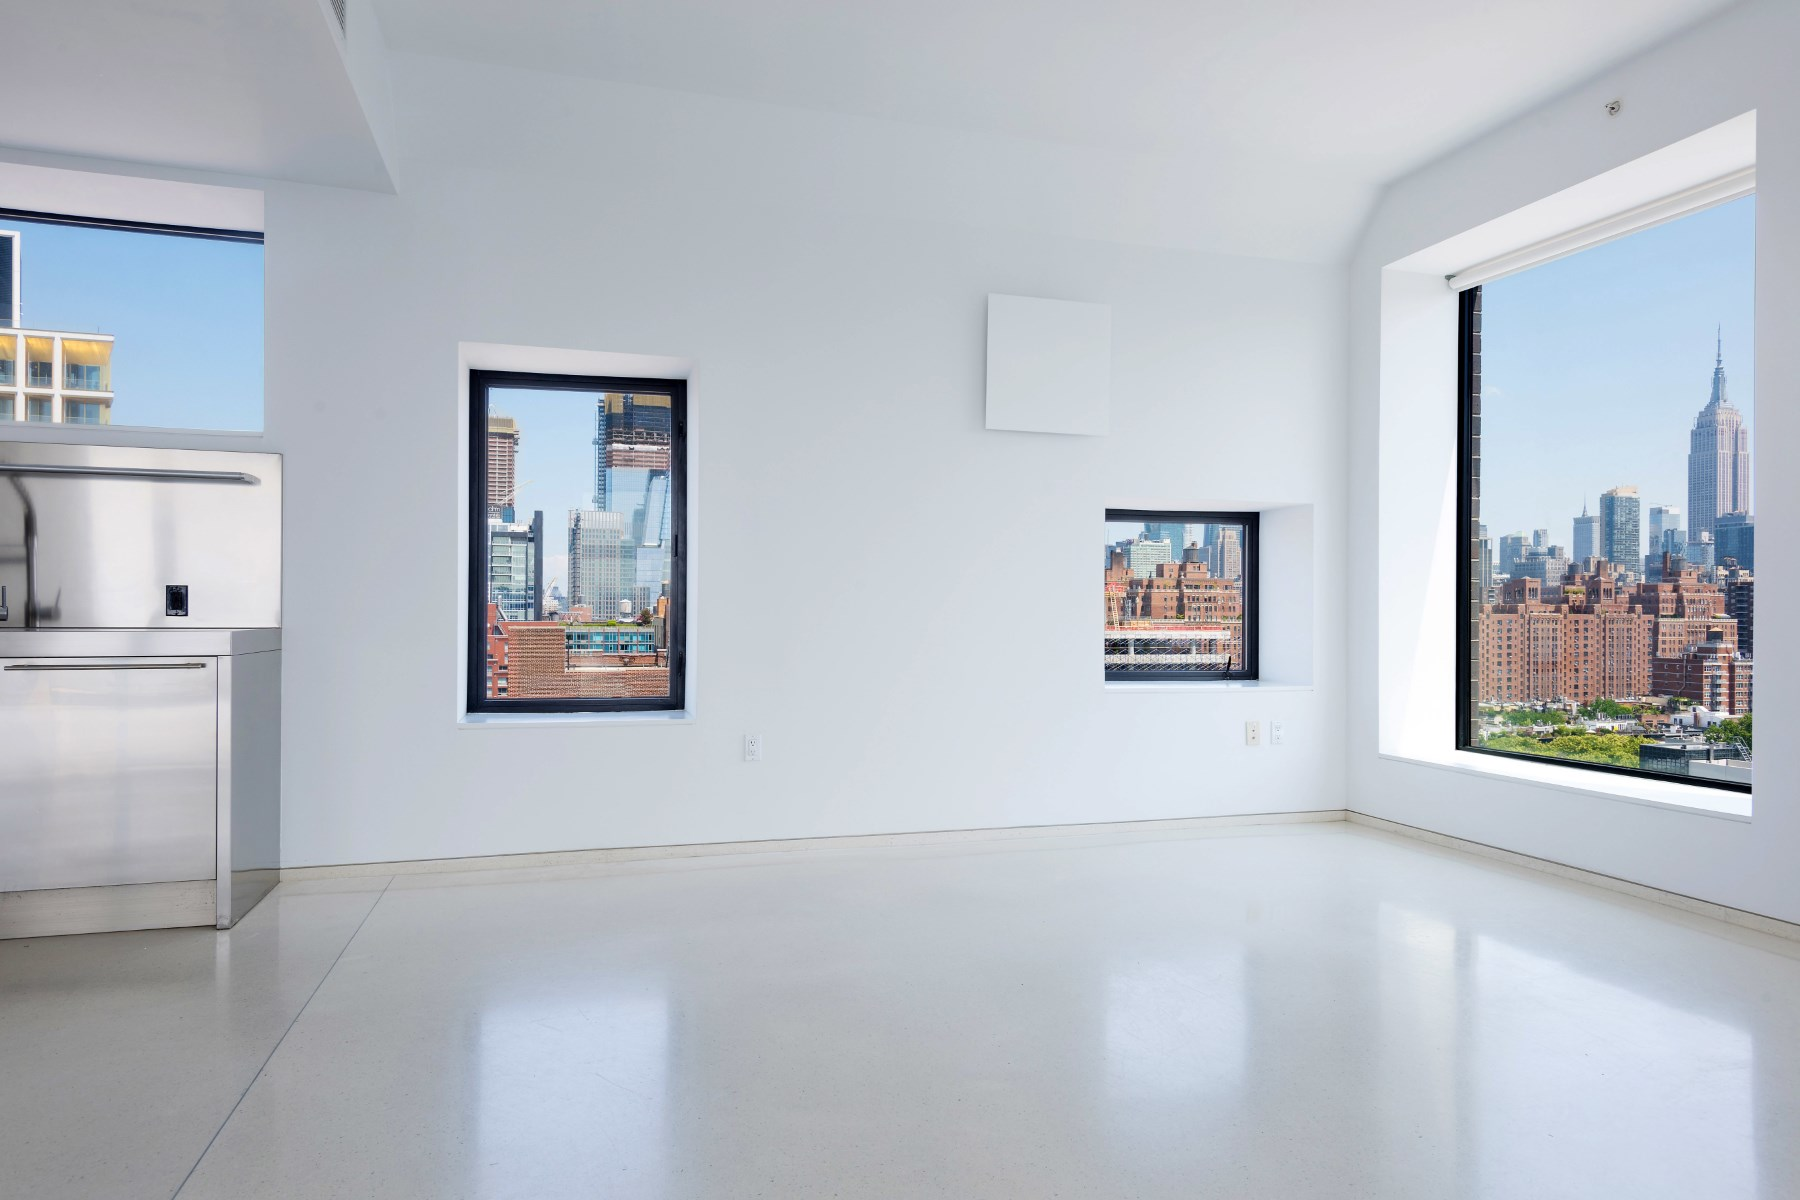 Condominium for Sale at With Respect To Light & Views 100 Eleventh Avenue Apt 16C, Chelsea, New York, New York, 10011 United States